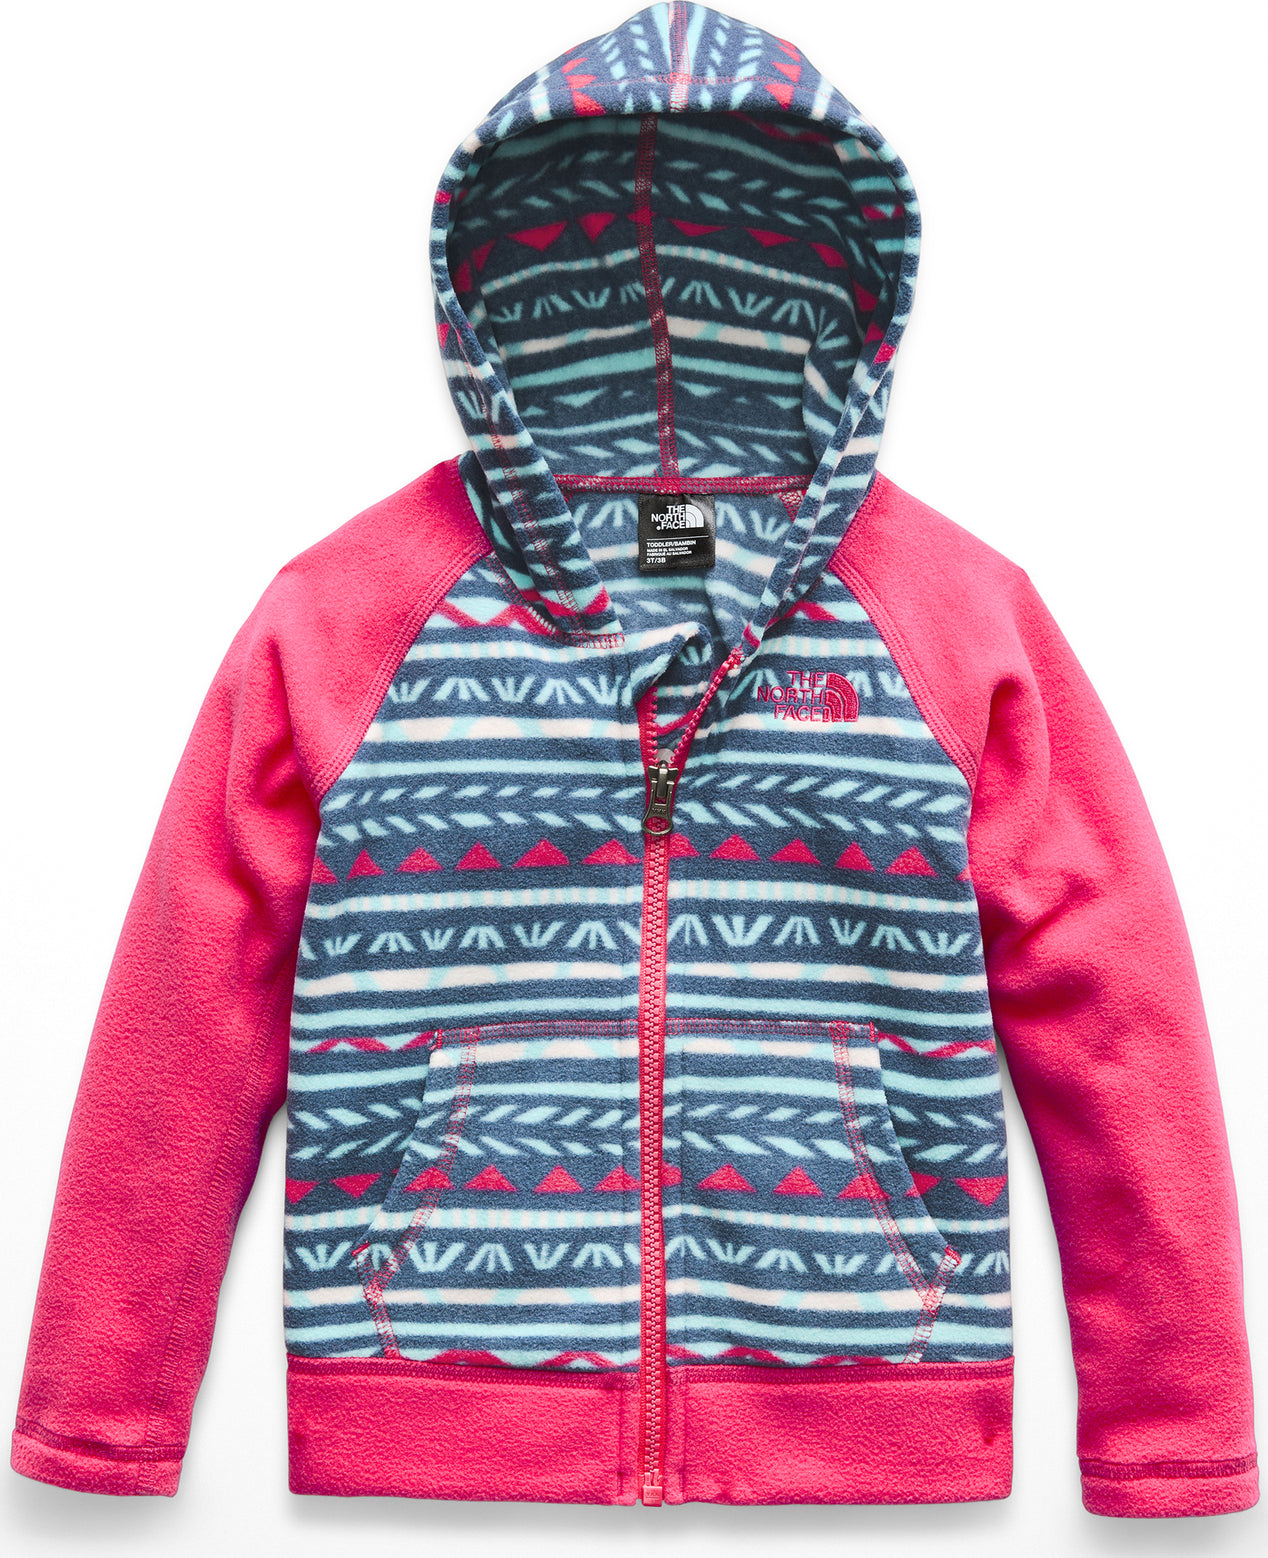 7252cd1ab The North Face Glacier Full Zip Hoodie - Toddler